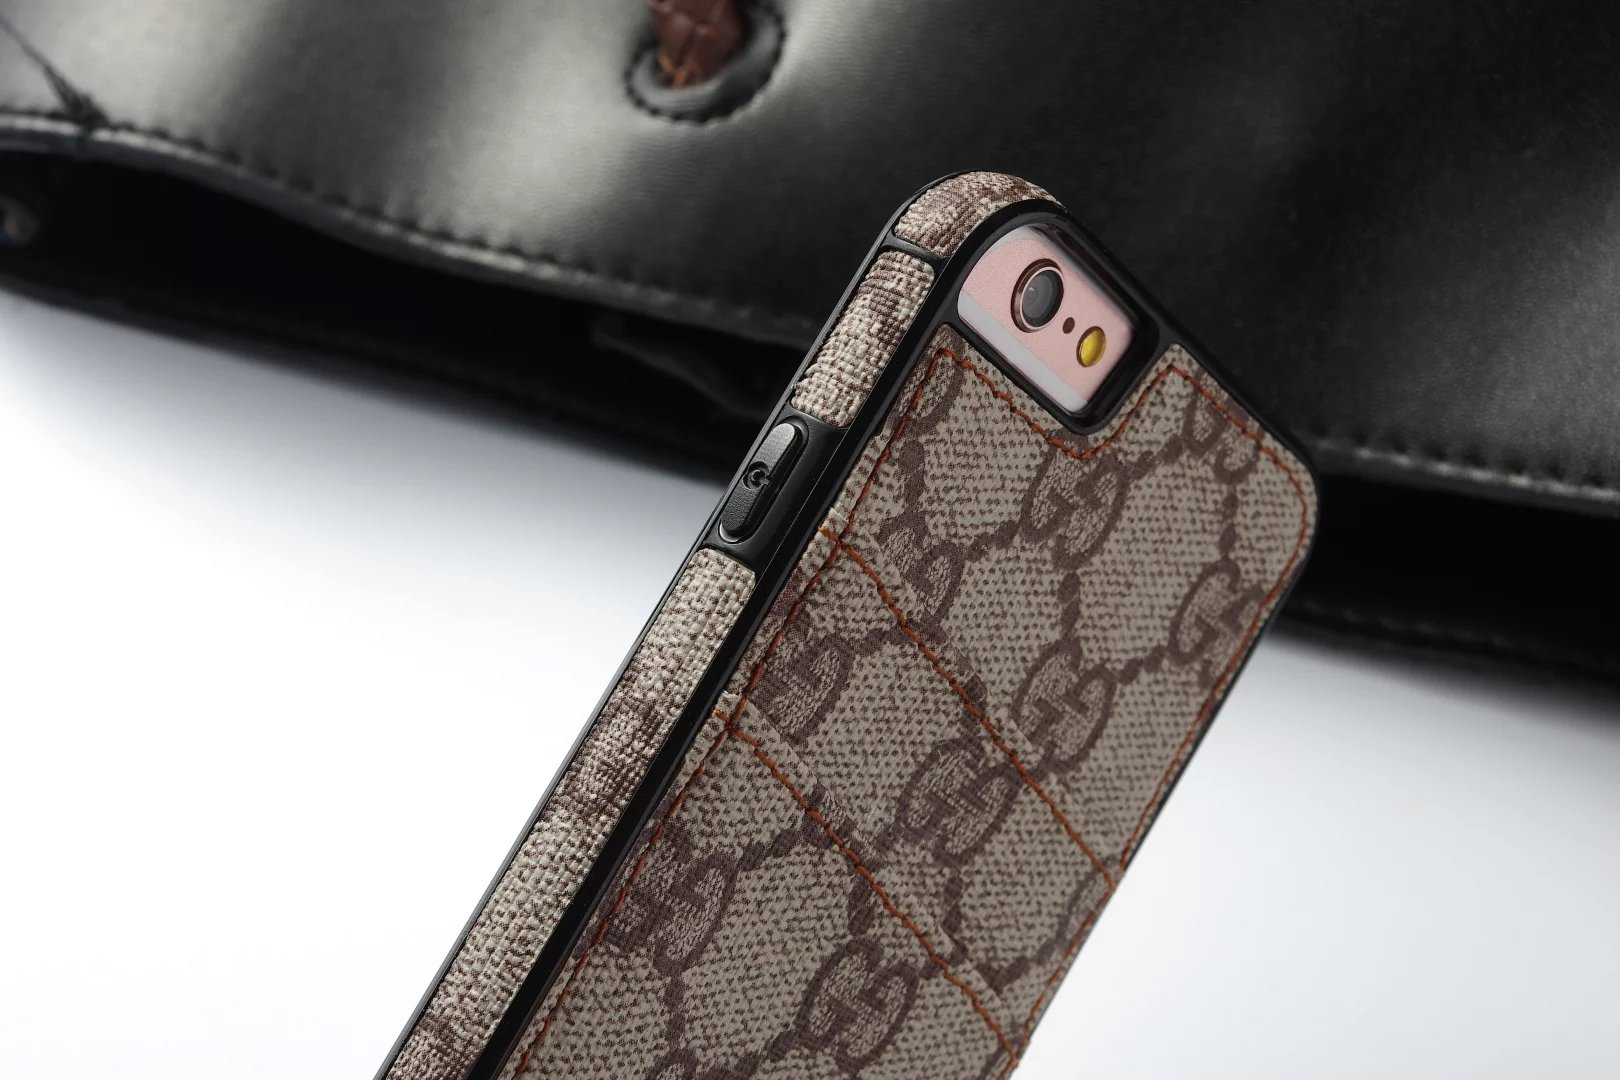 iphone klapphülle iphone hülle individuell Louis Vuitton iphone7 hülle original apple iphone hülle spezielle iphone hüllen handyschalen bedrucken las7n handy cover iphone iphone 7 hülle zum aufklappen iphone 7 gürteltasche